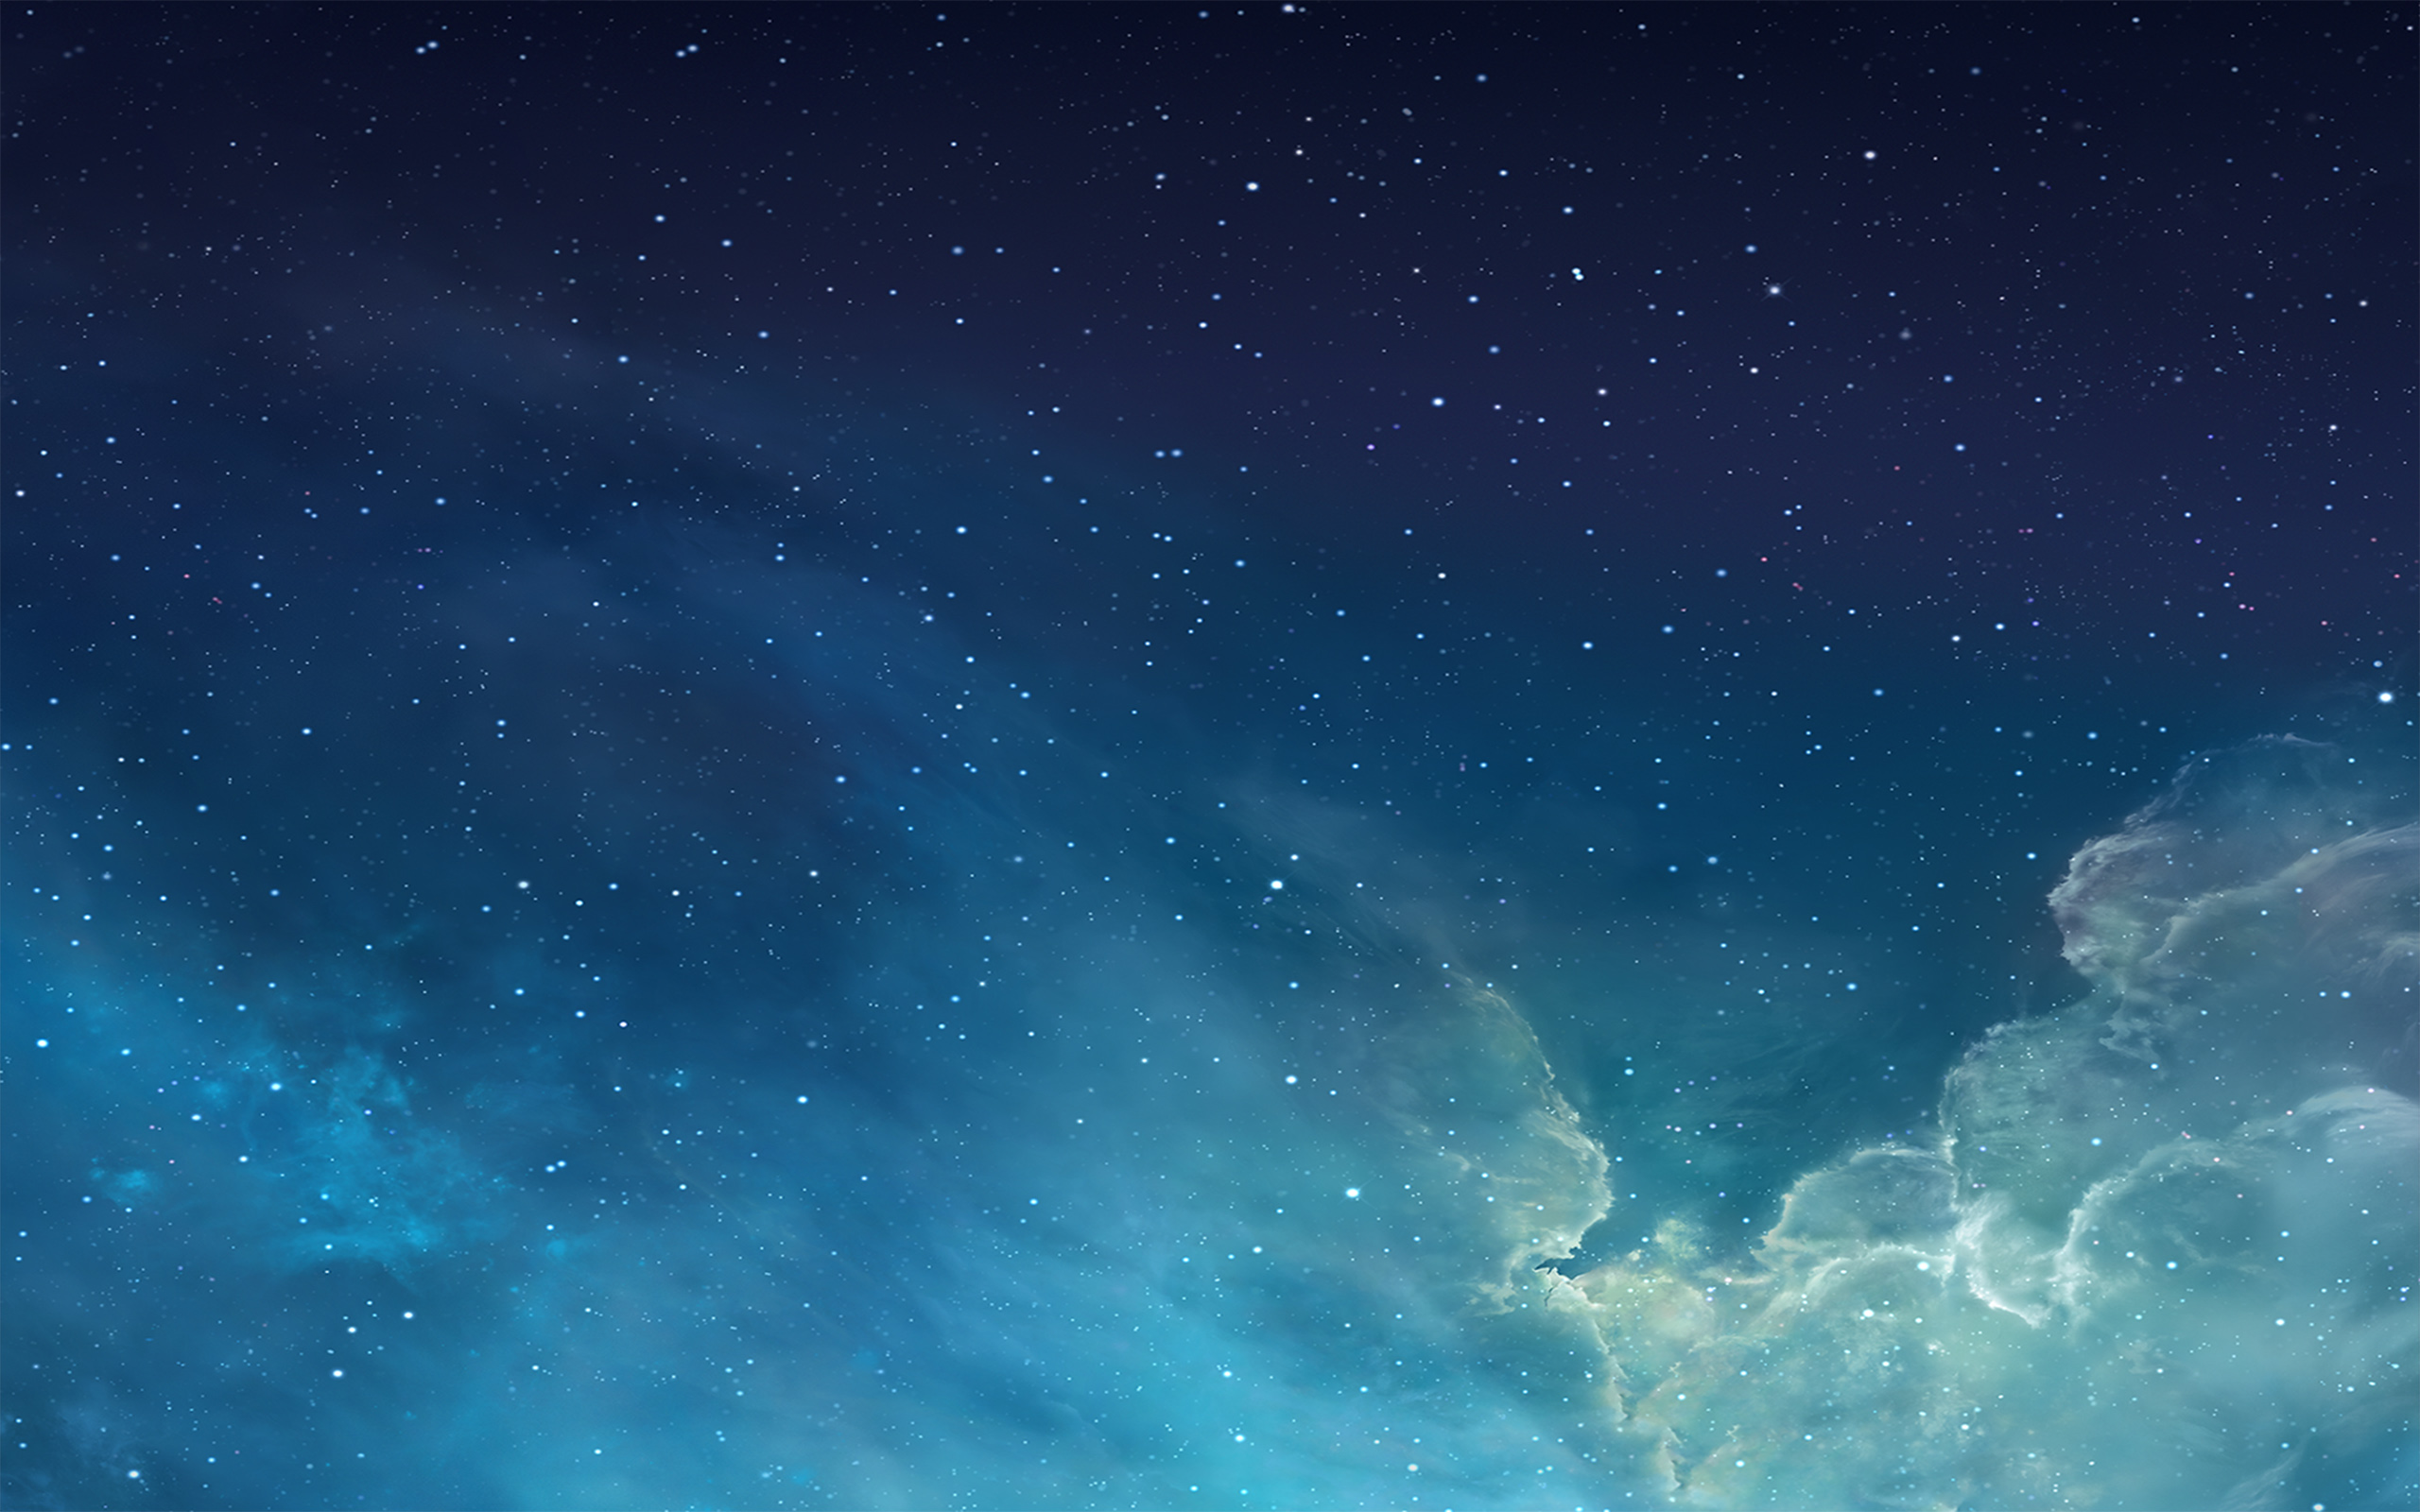 IOS7 Wallpapers